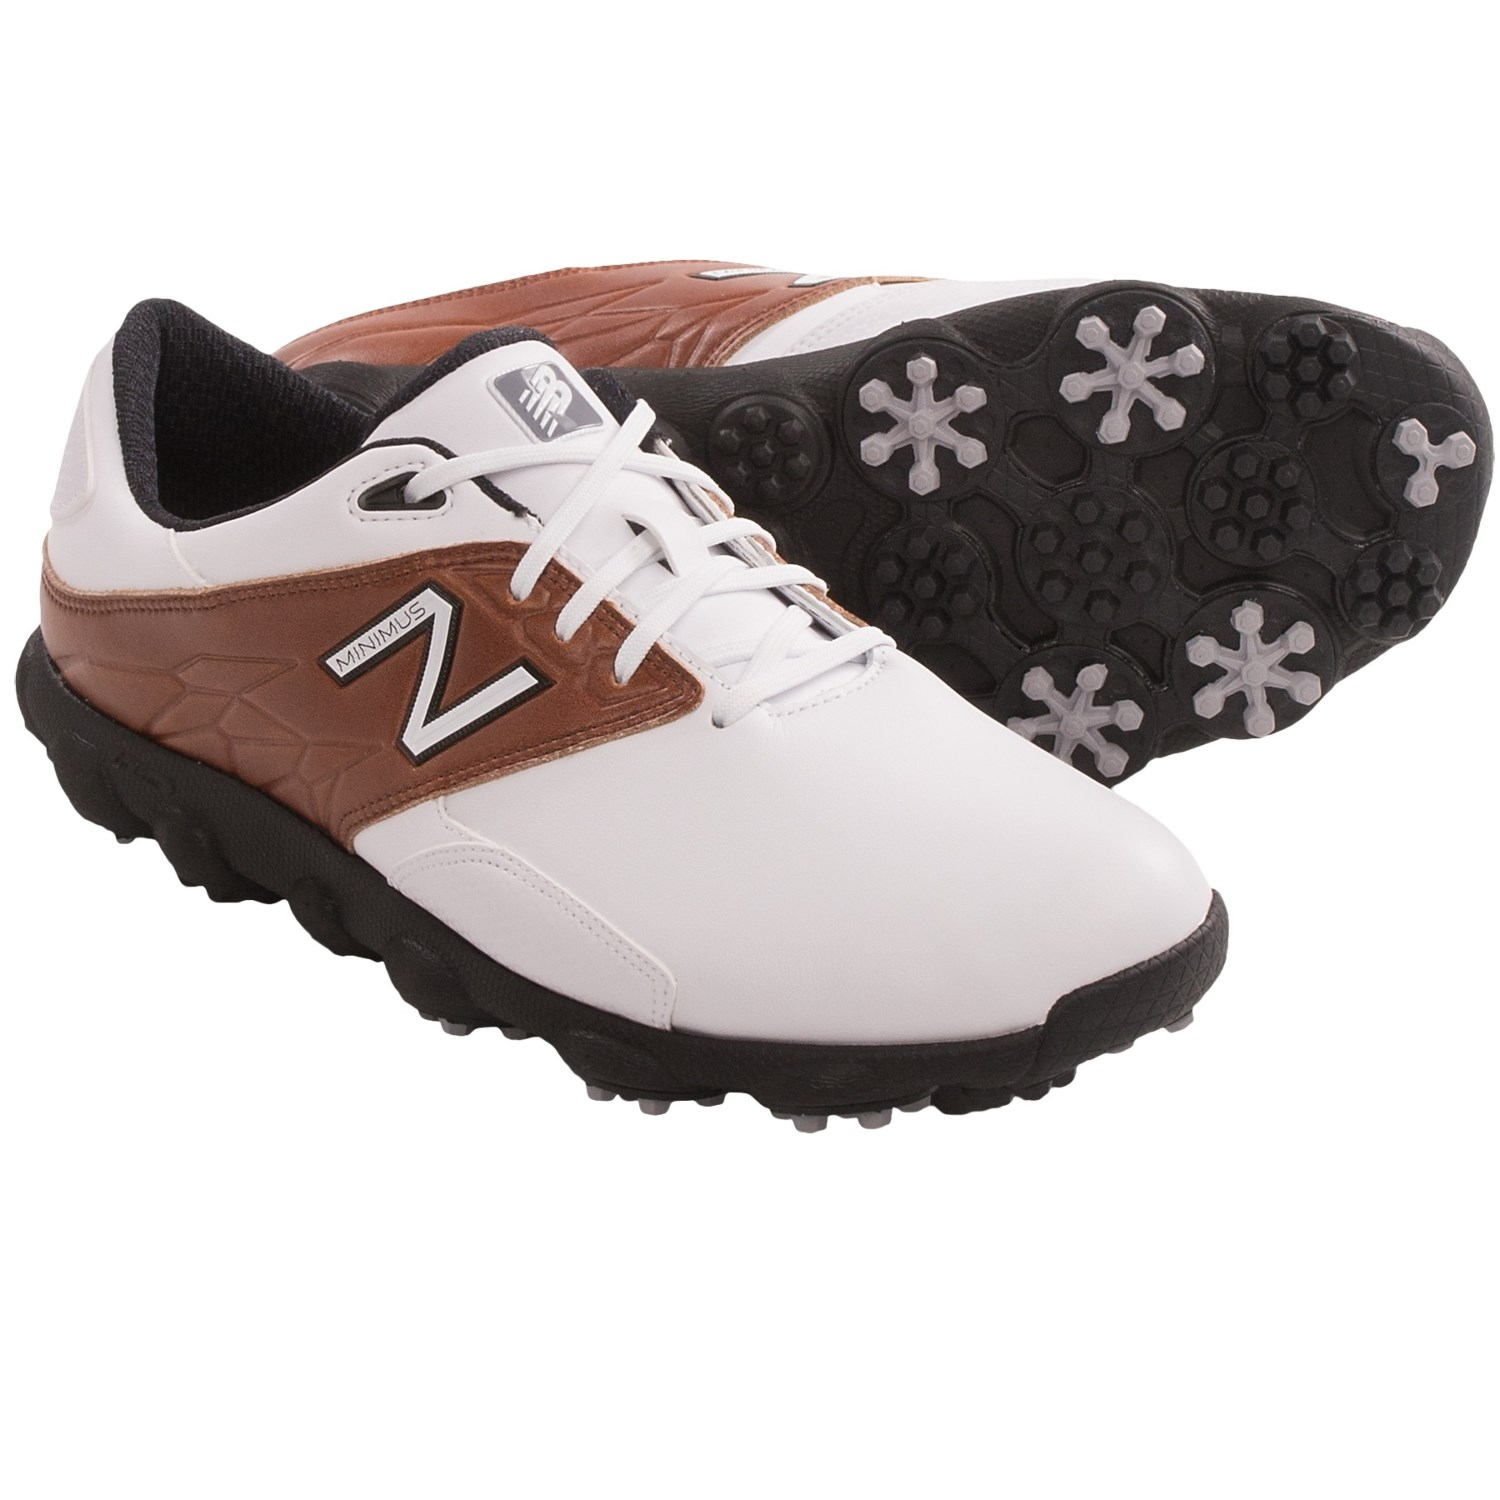 New Balance Minimus Golf Shoes Review